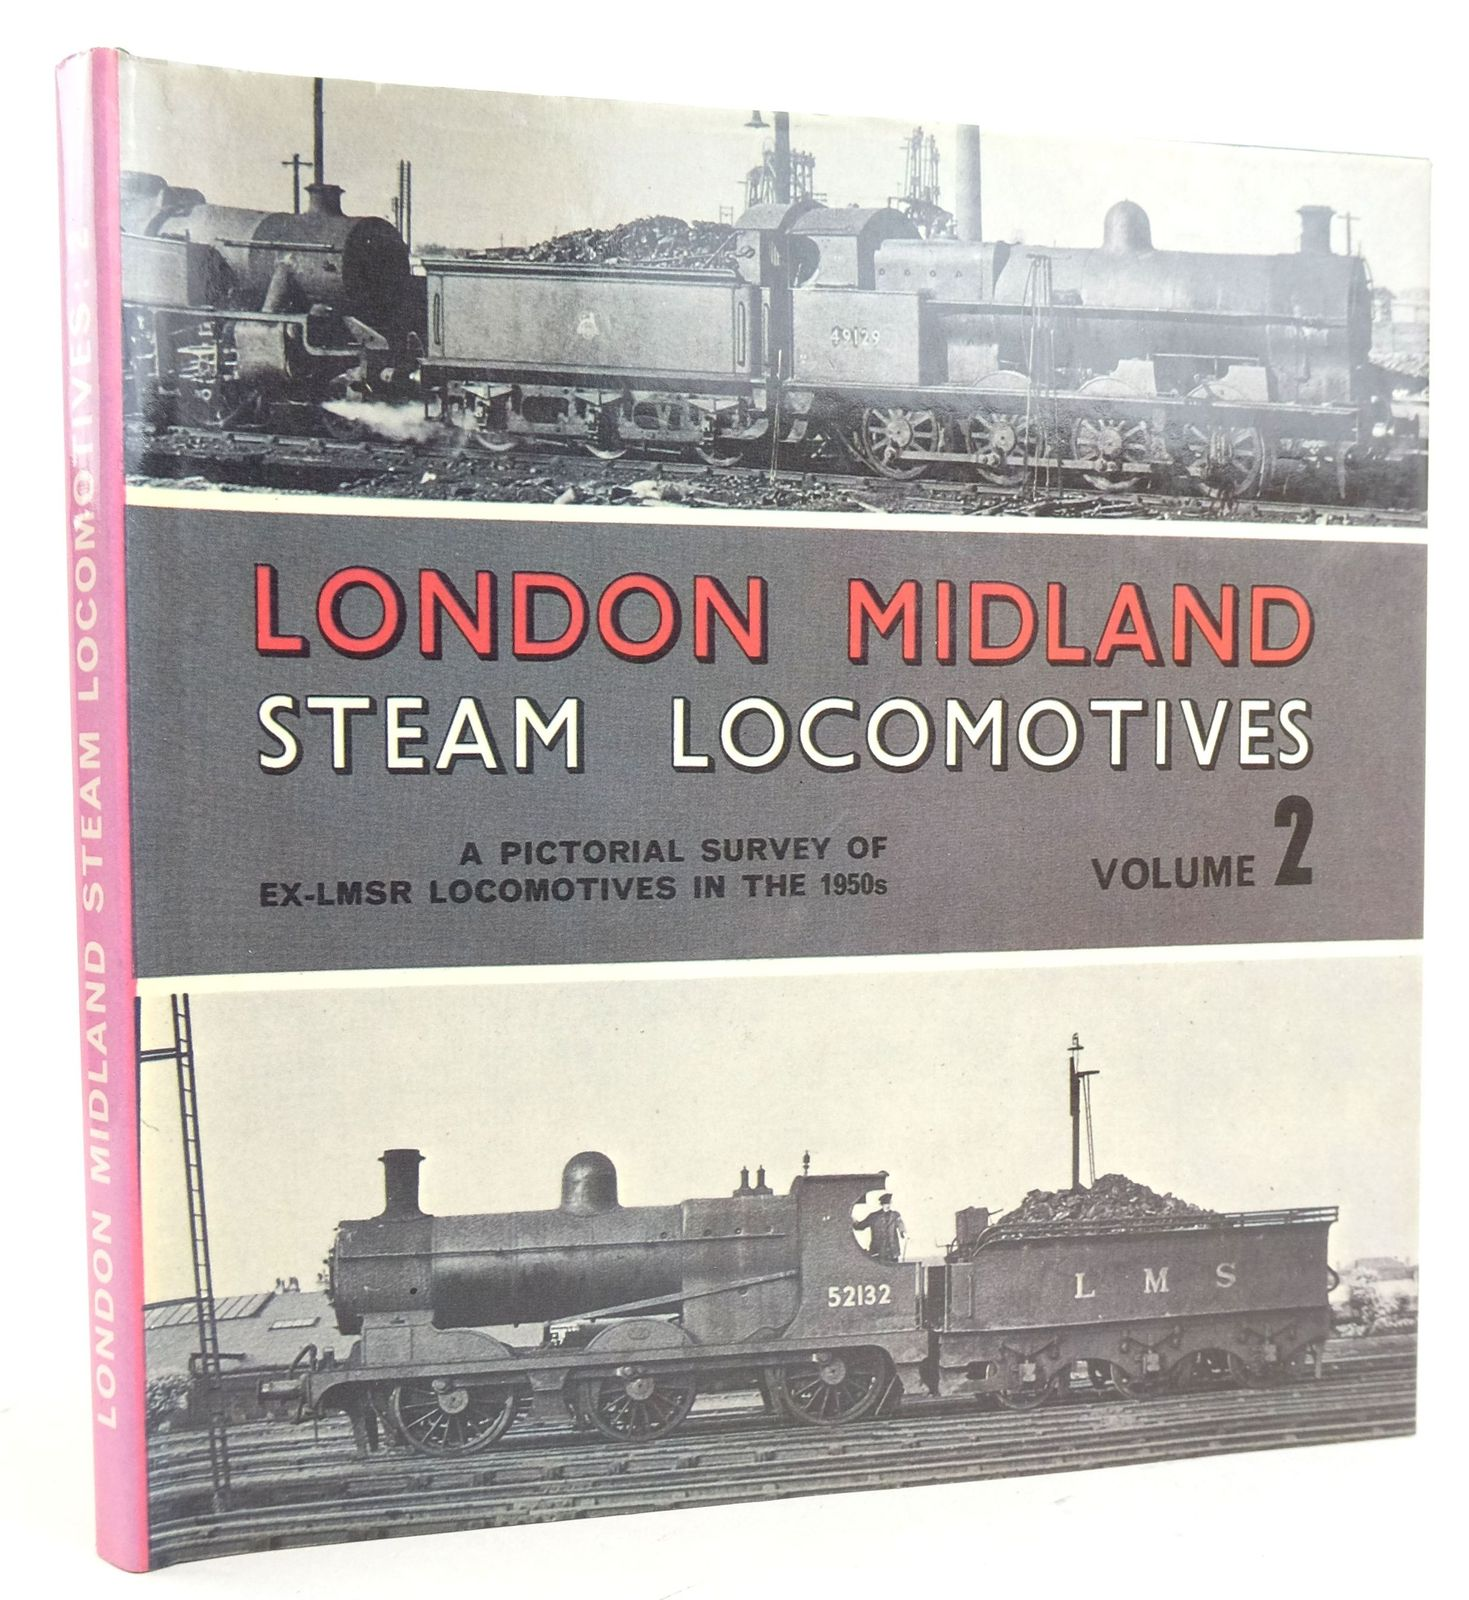 Photo of LONDON MIDLAND STEAM LOCOMOTIVES VOLUME 2 written by Morrison, Brian published by D. Bradford Barton (STOCK CODE: 1819872)  for sale by Stella & Rose's Books